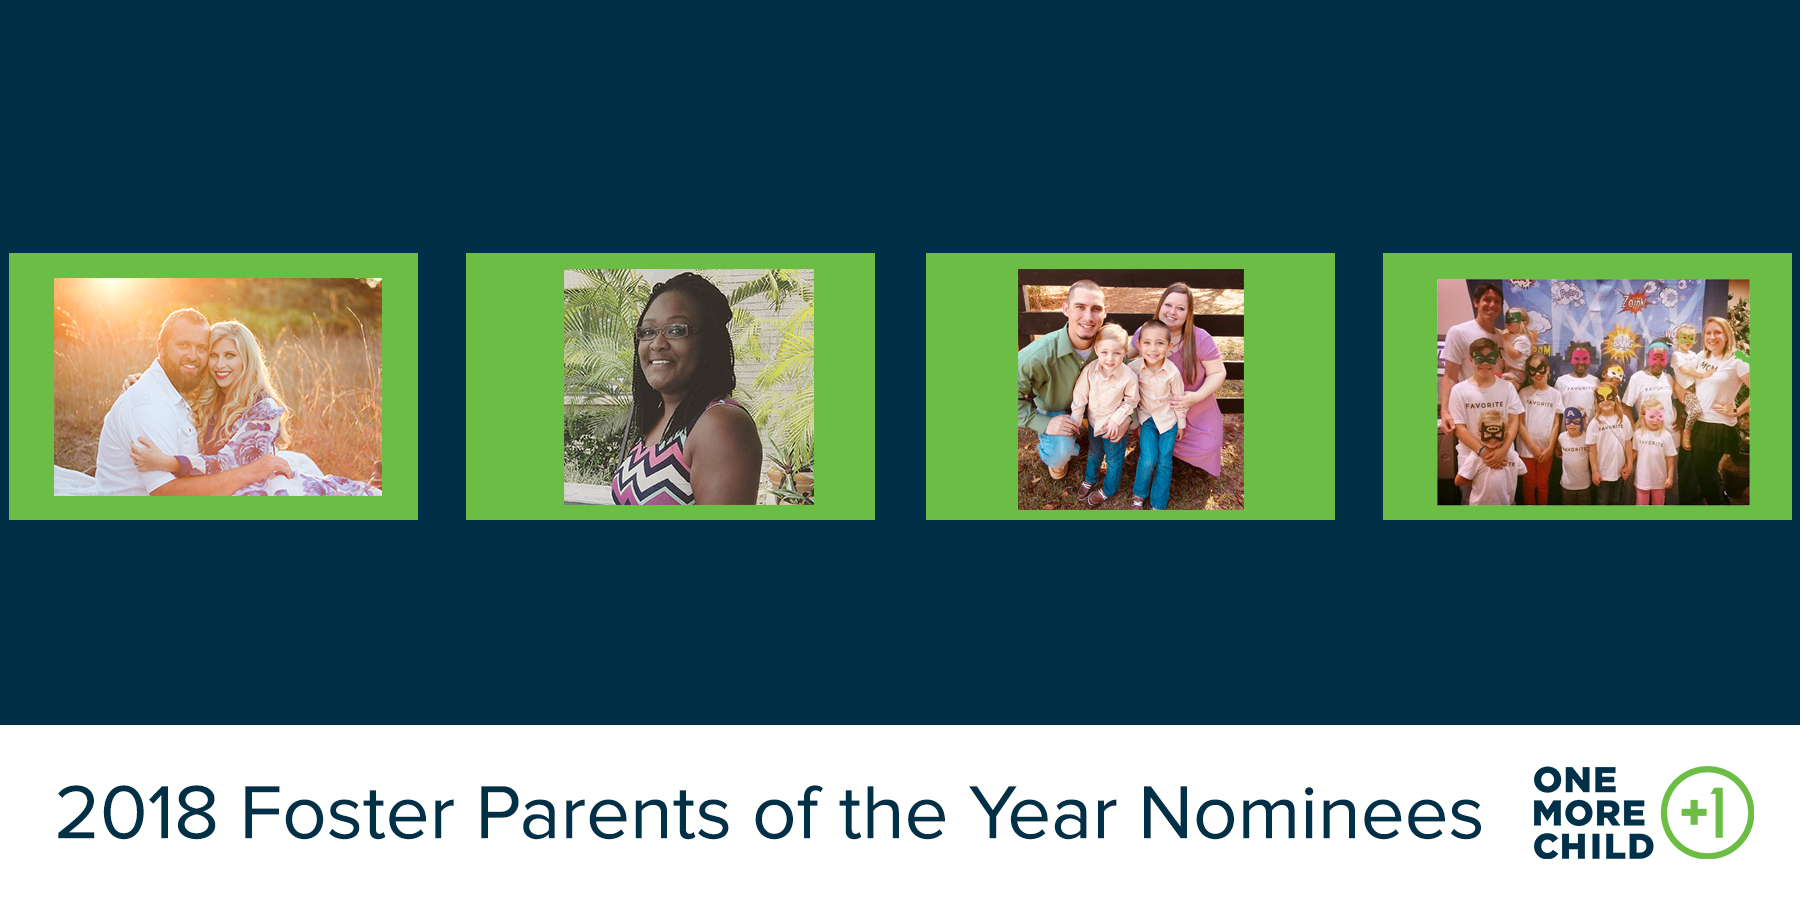 2018 Foster Parents of the Year Nominees (Pt. 2)